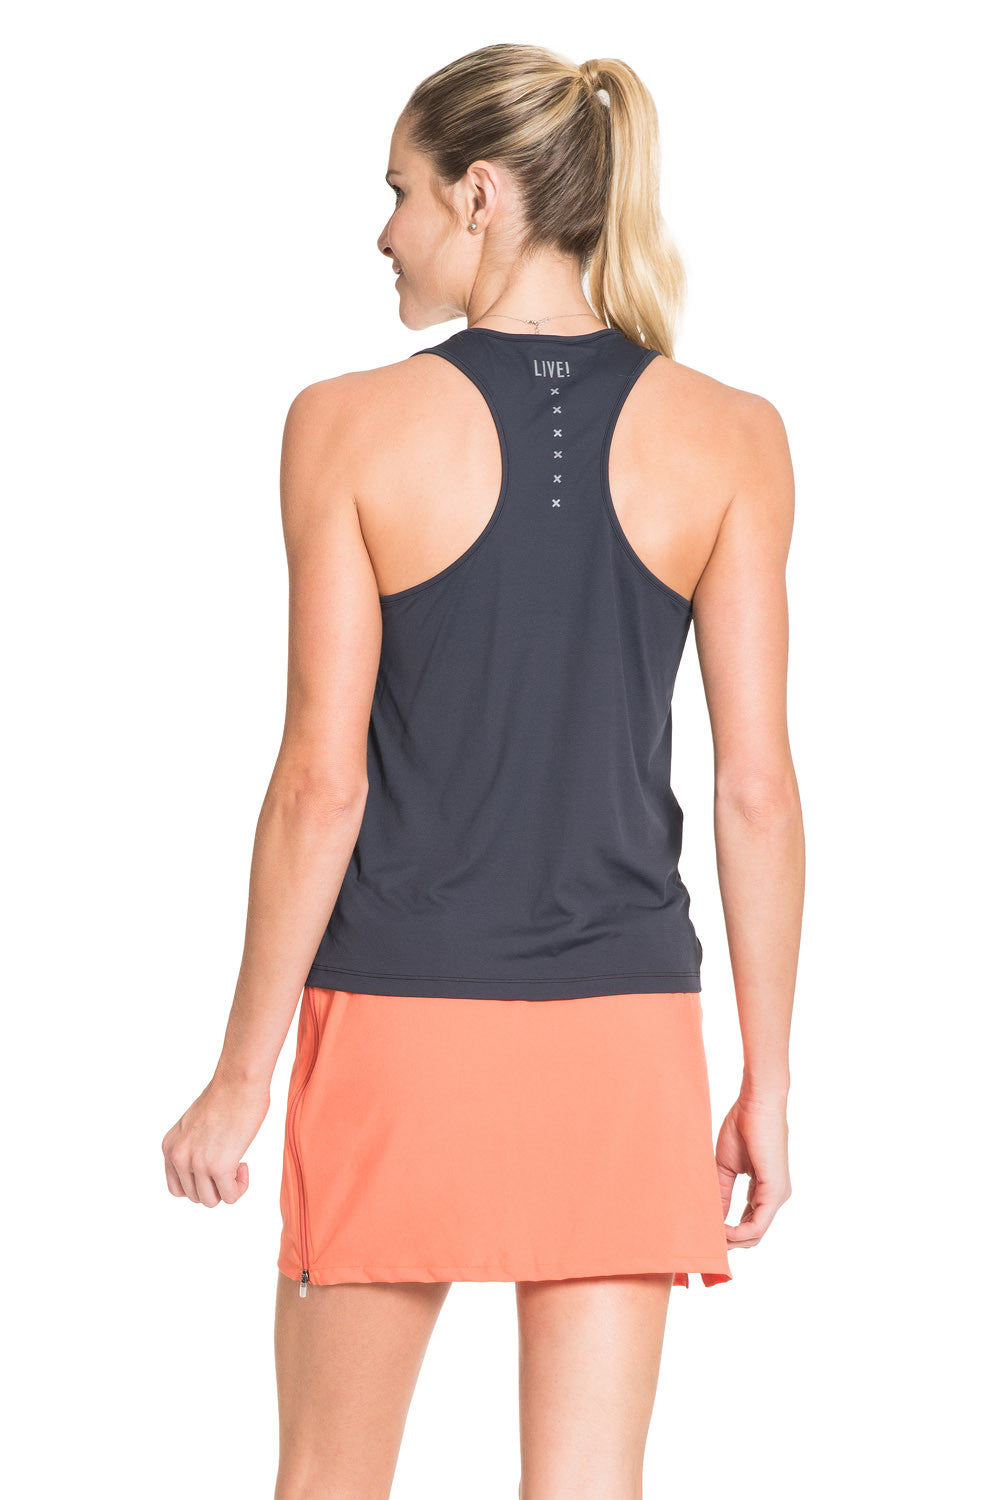 Glow Fire Color Racerback